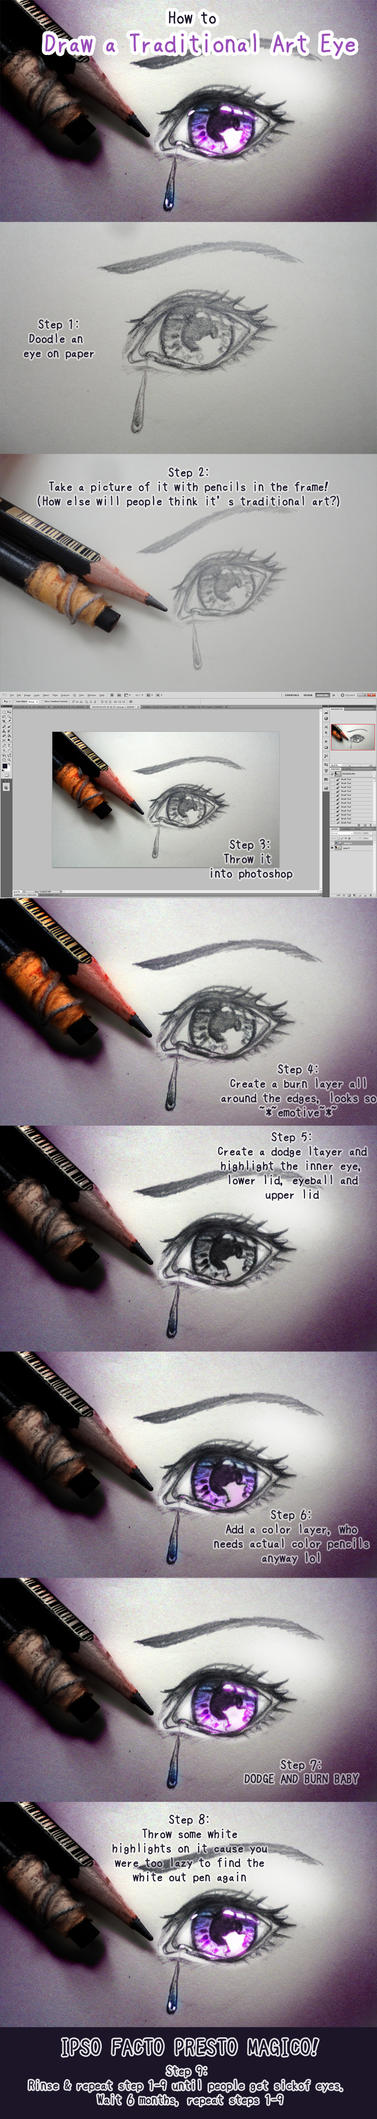 How to Draw a Traditional Art Eye by Shattered-Earth